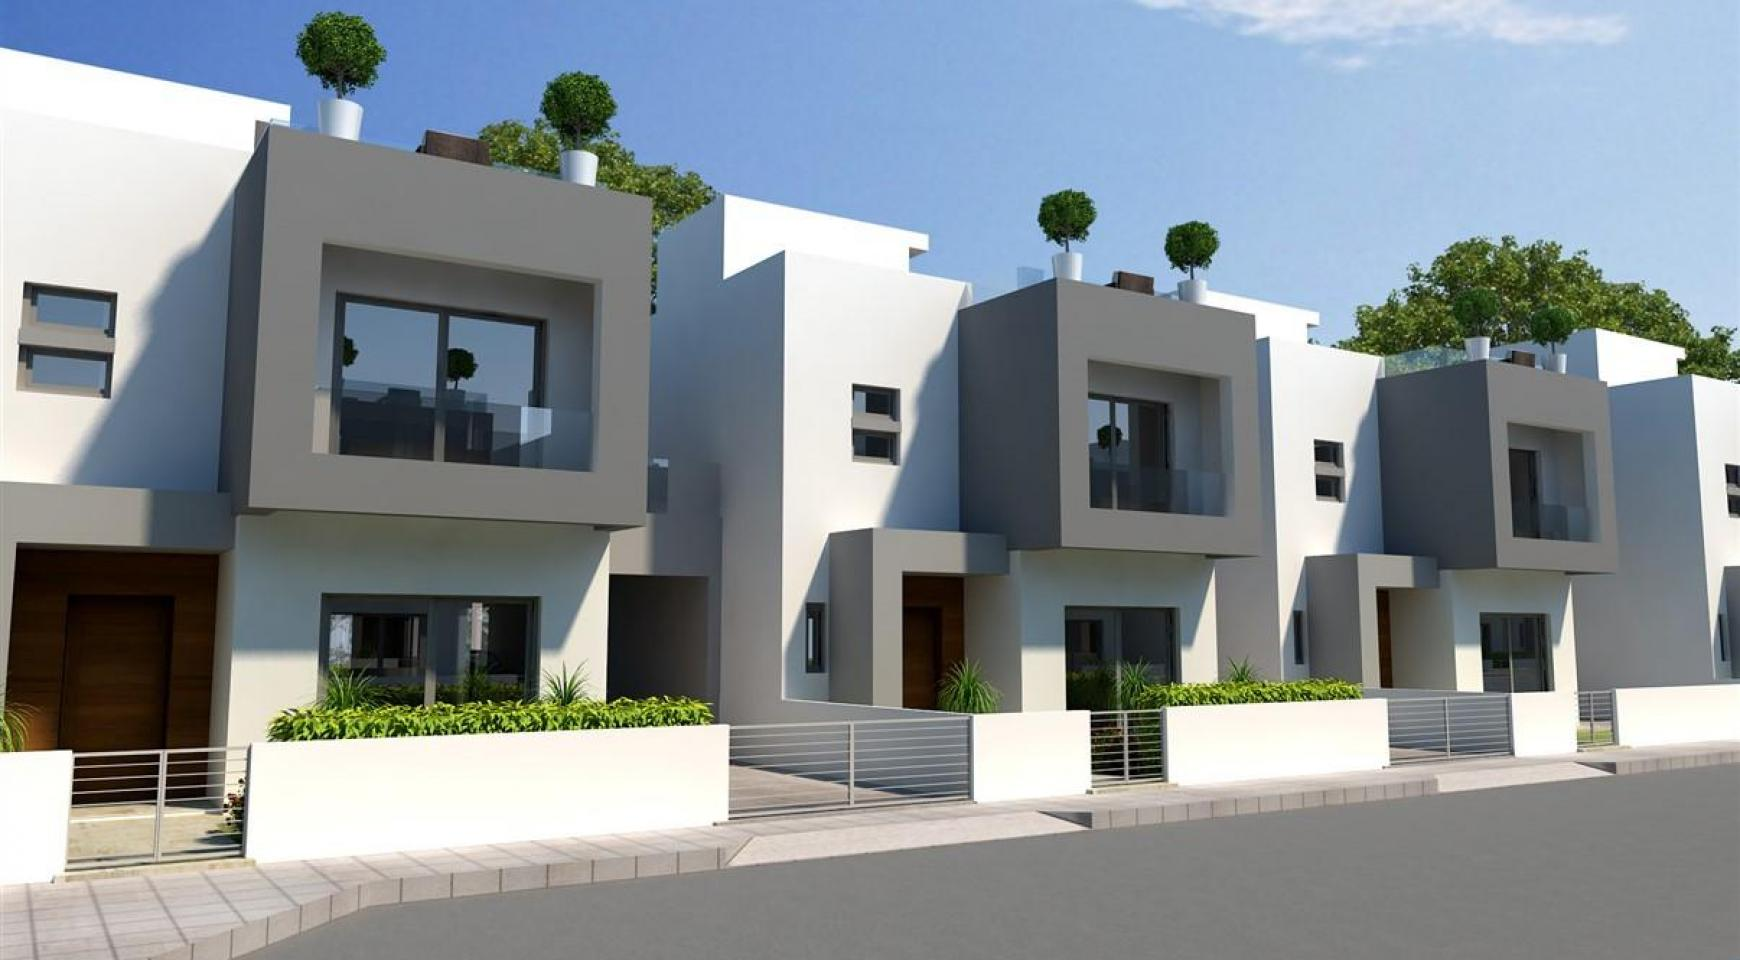 3 Bedroom Villa in a New Project - 36